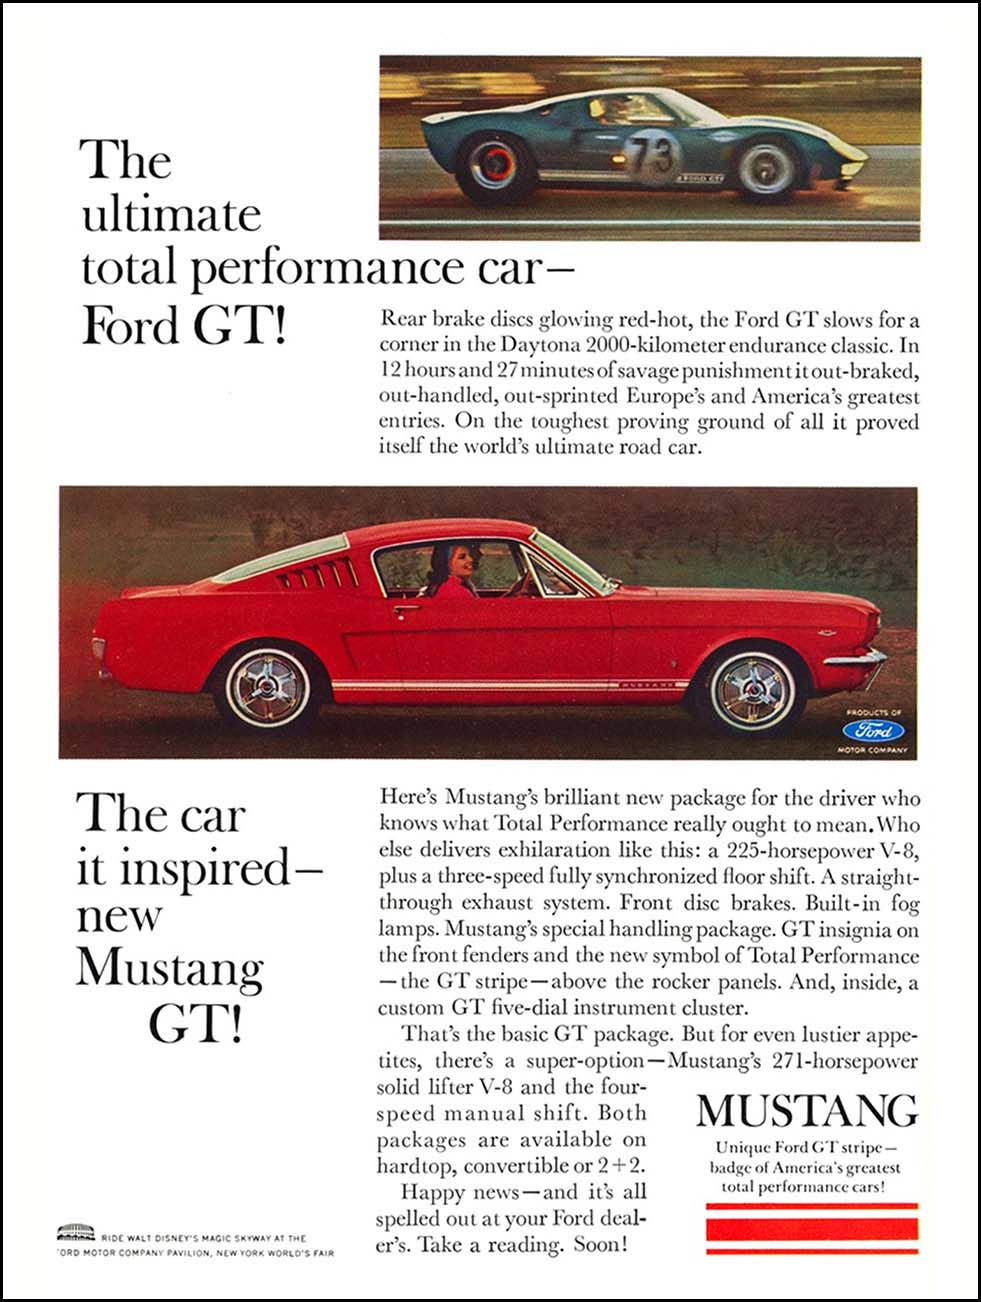 1965 Ford Mustang GT Print Ad